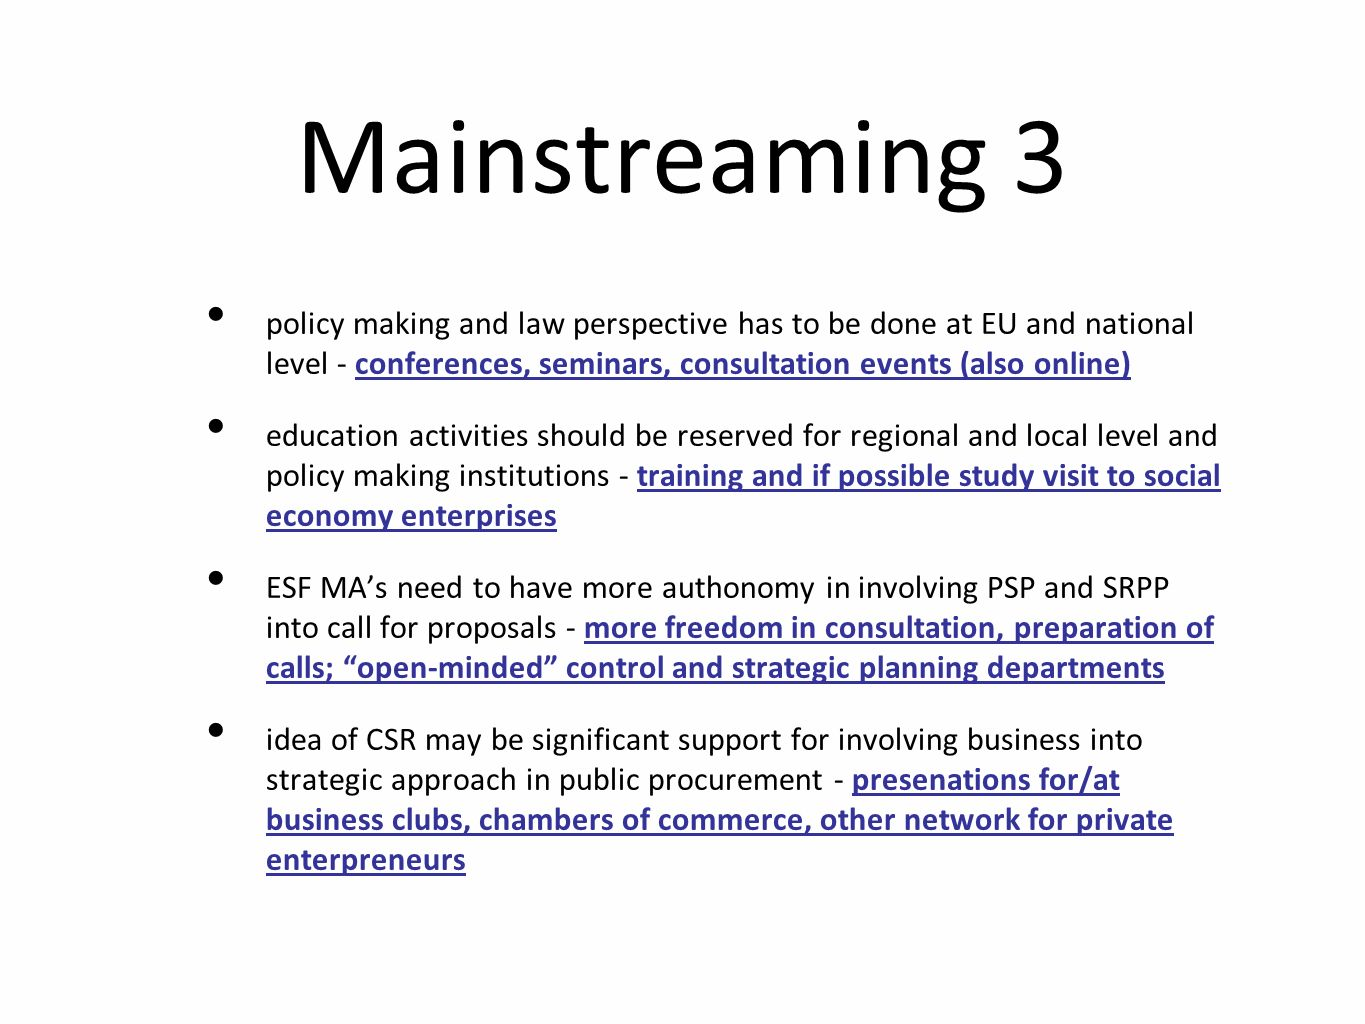 Mainstreaming 3 policy making and law perspective has to be done at EU and national level - conferences, seminars, consultation events (also online) education activities should be reserved for regional and local level and policy making institutions - training and if possible study visit to social economy enterprises ESF MAs need to have more authonomy in involving PSP and SRPP into call for proposals - more freedom in consultation, preparation of calls; open-minded control and strategic planning departments idea of CSR may be significant support for involving business into strategic approach in public procurement - presenations for/at business clubs, chambers of commerce, other network for private enterpreneurs